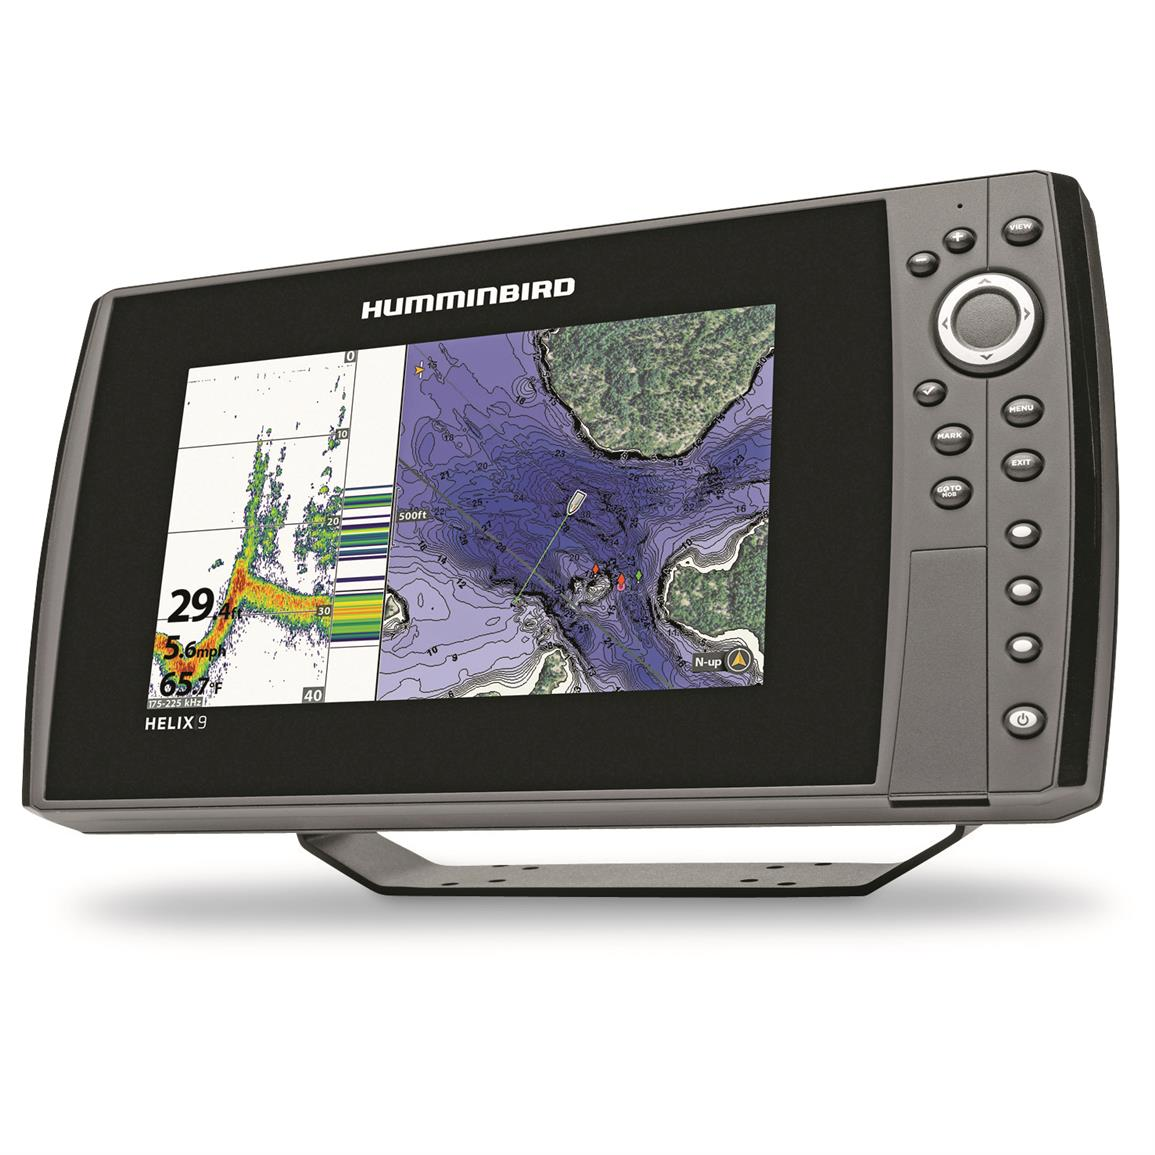 Humminbird helix 9 chirp gps g2n sonar fish finder for Humminbird fish finders